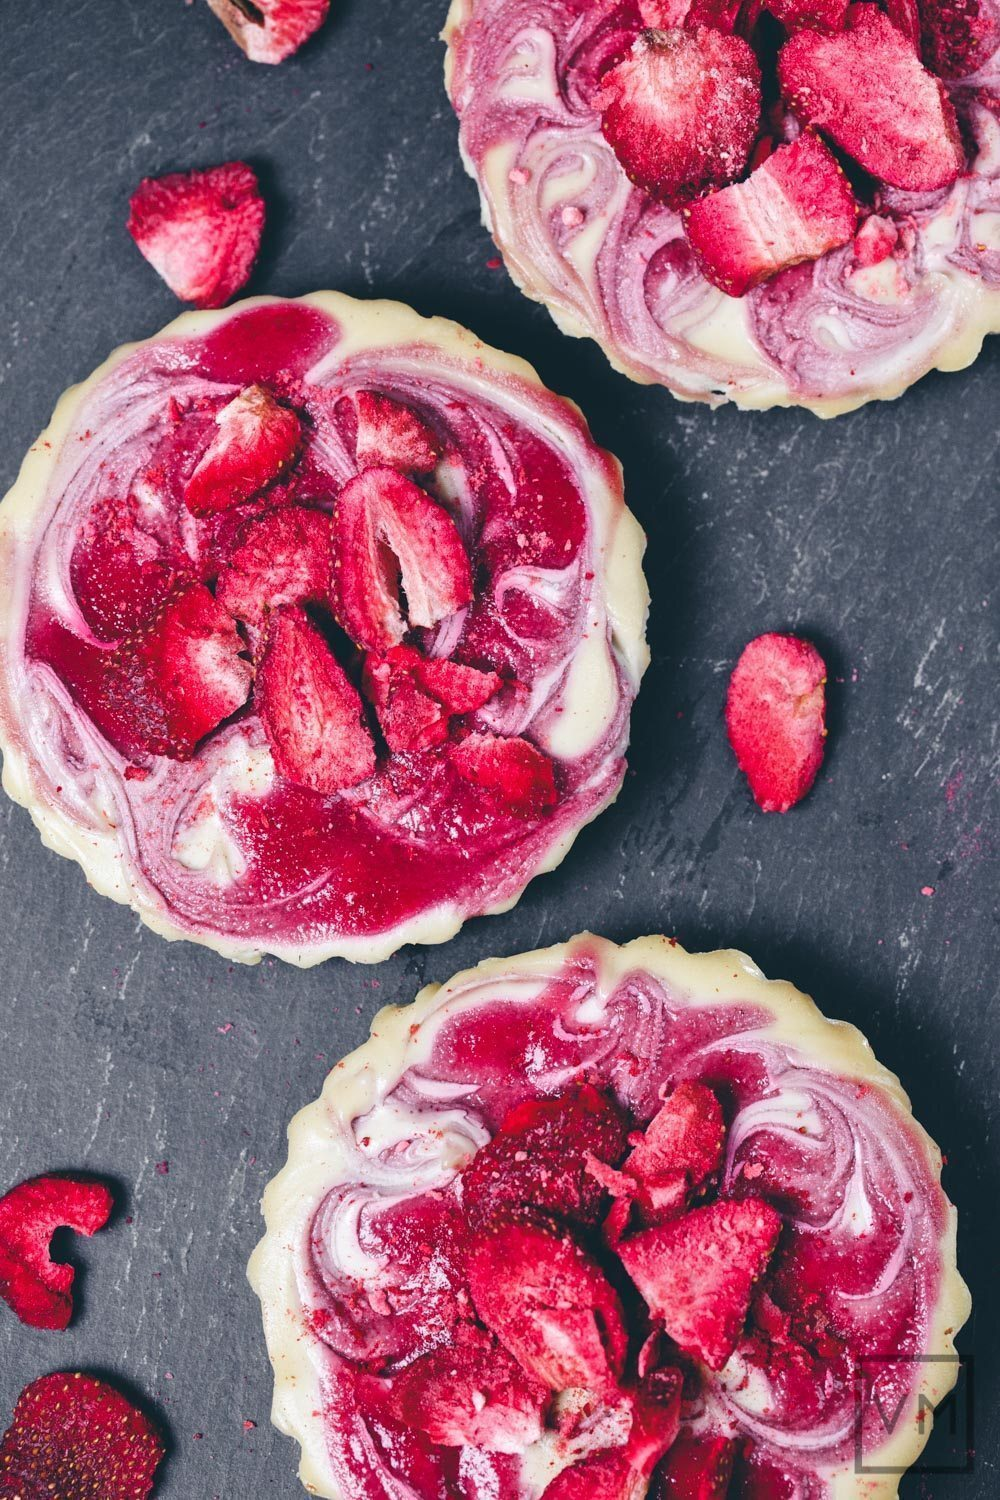 Strawberry Swirl Cheesecake from Decadent Gluten-Free Vegan Baking + Giveaway (US and Canada)